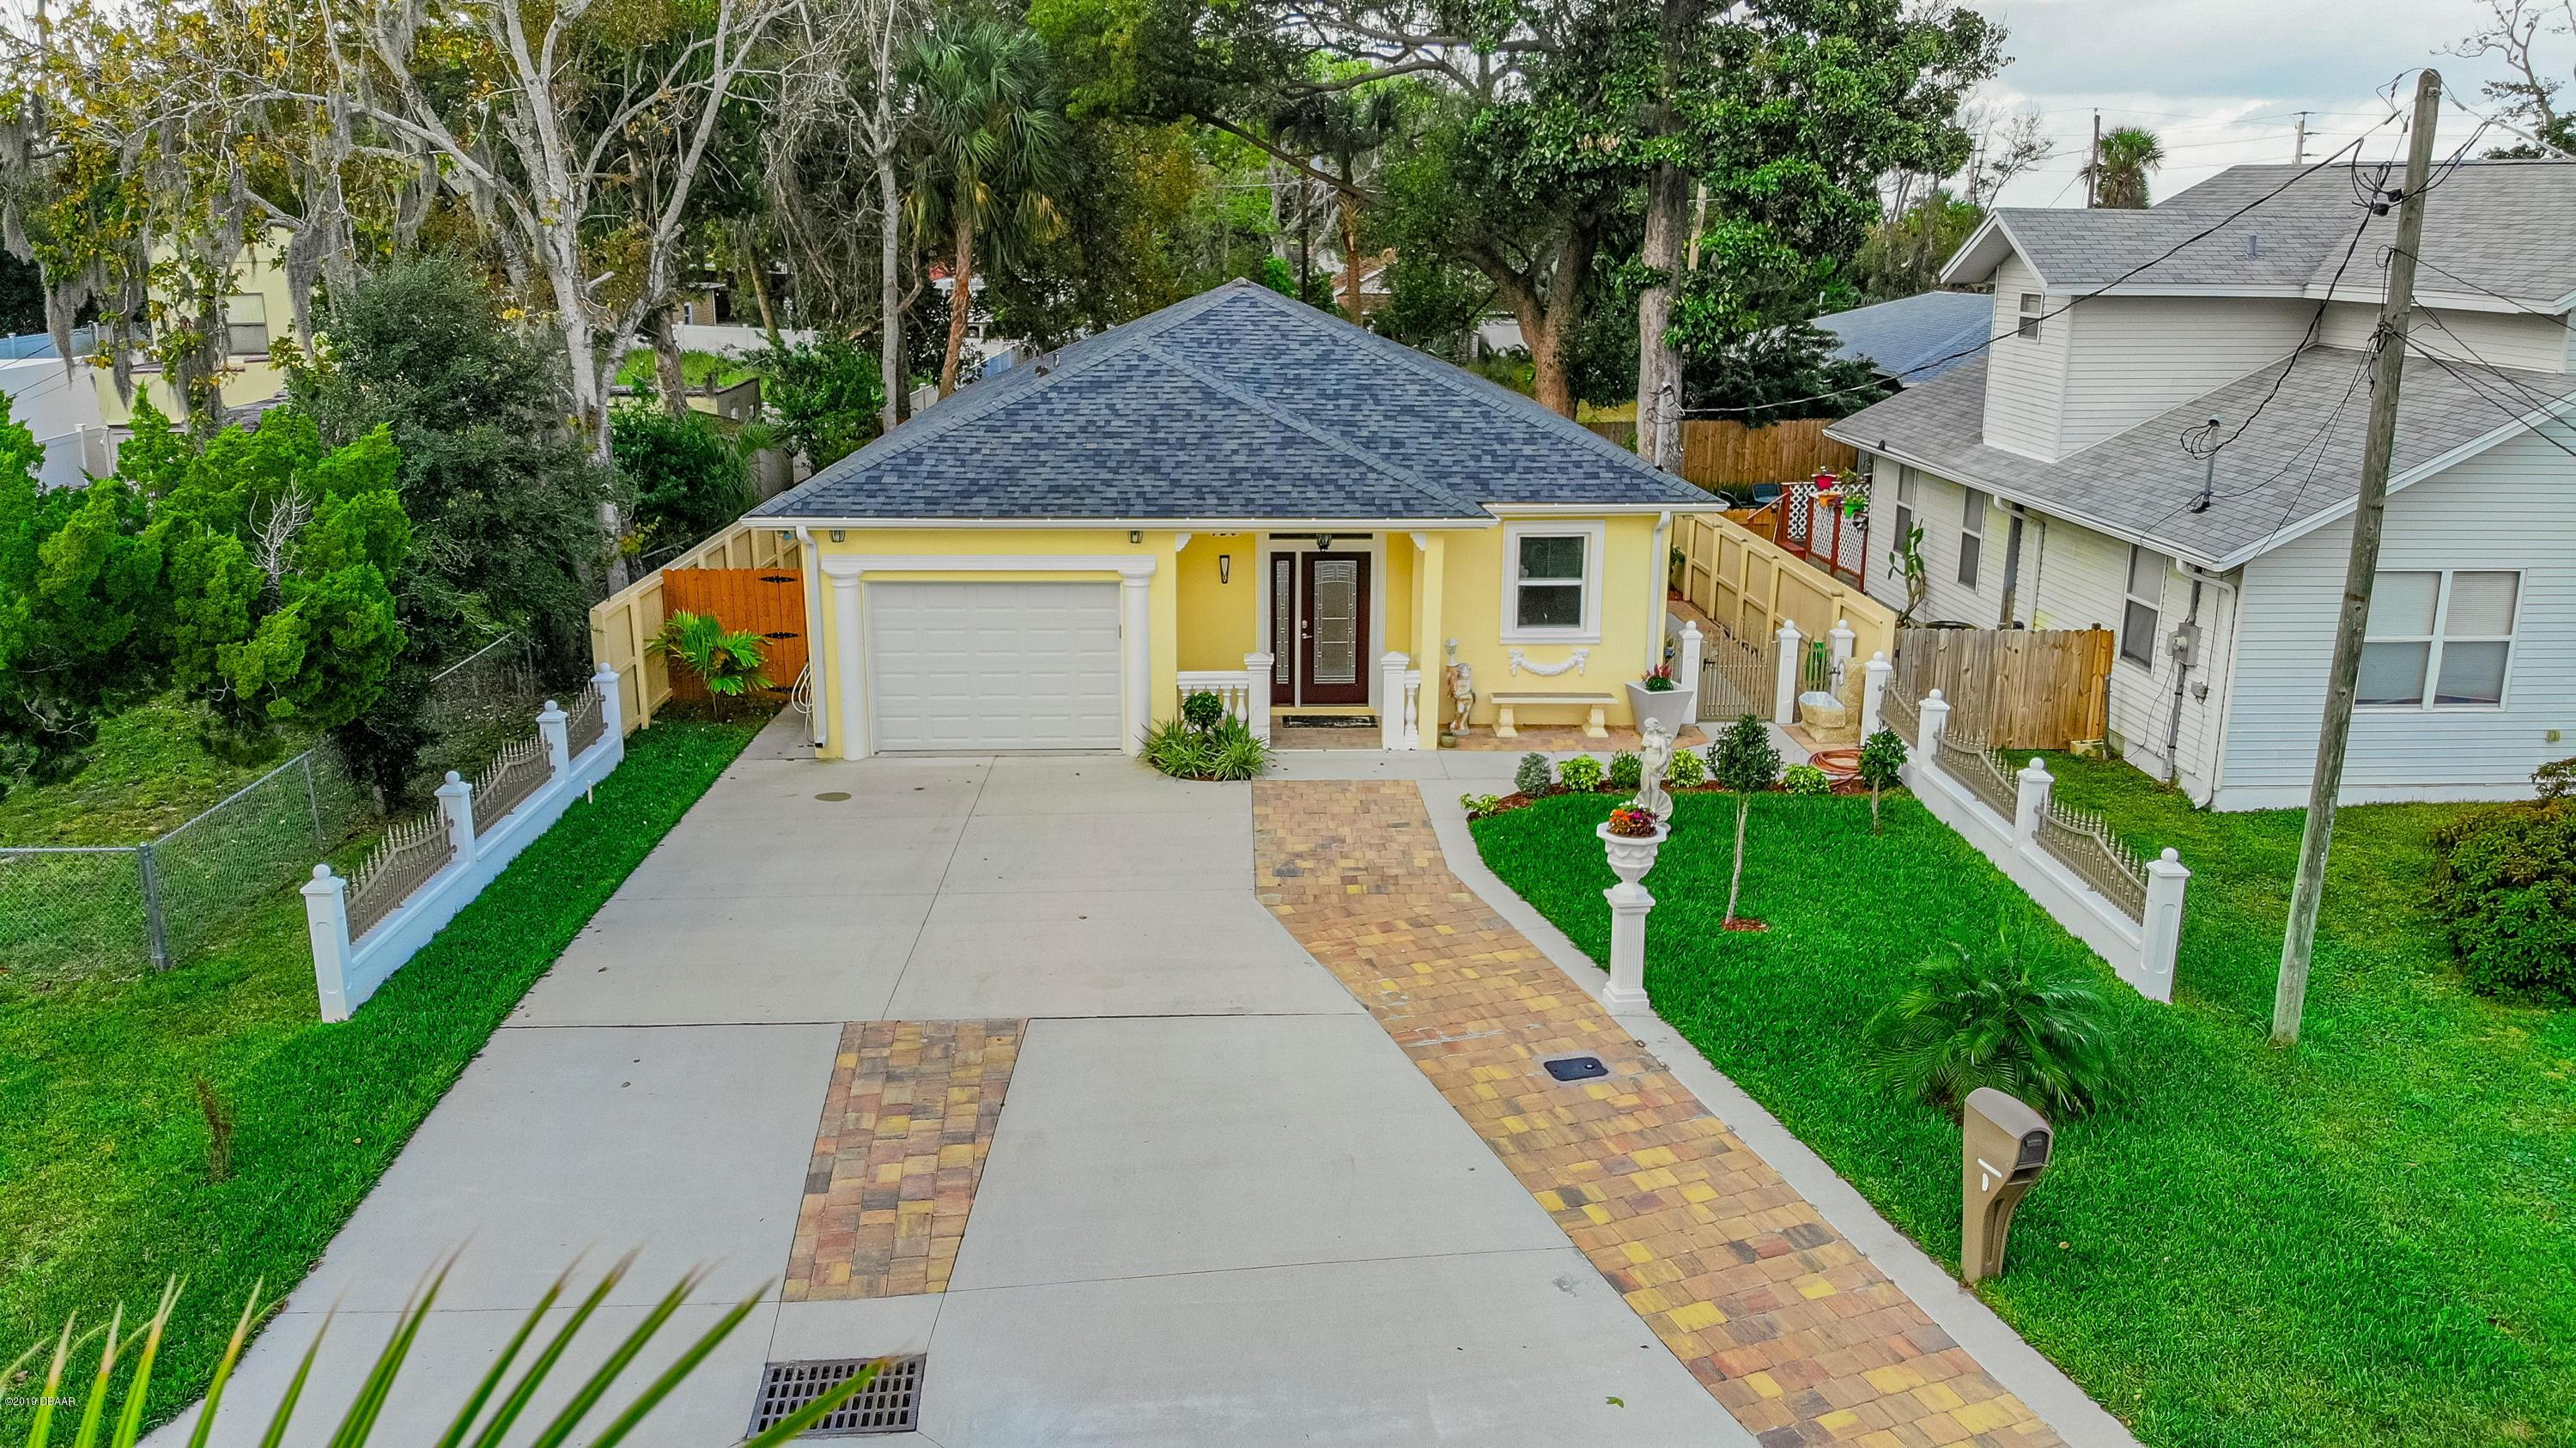 120 7th St, Holly Hill, Florida